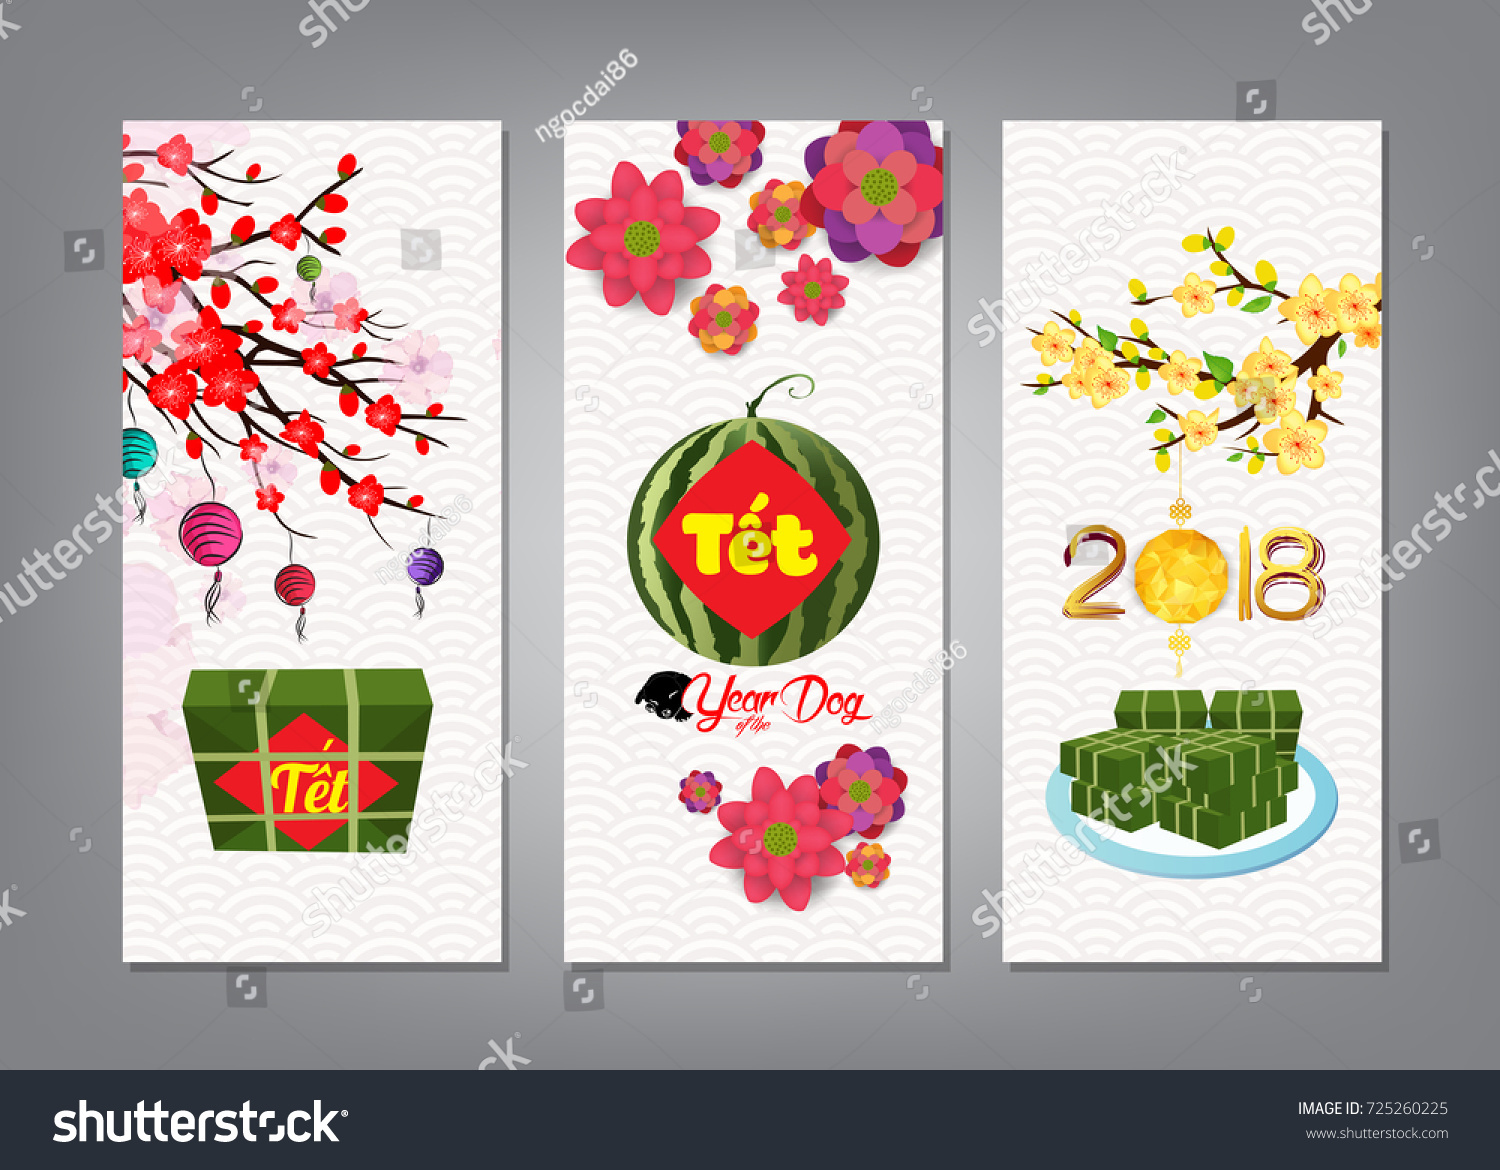 Cooked square glutinous rice cake blossom stock vector royalty free cooked square glutinous rice cake and blossom banner vietnamese new year translation m4hsunfo